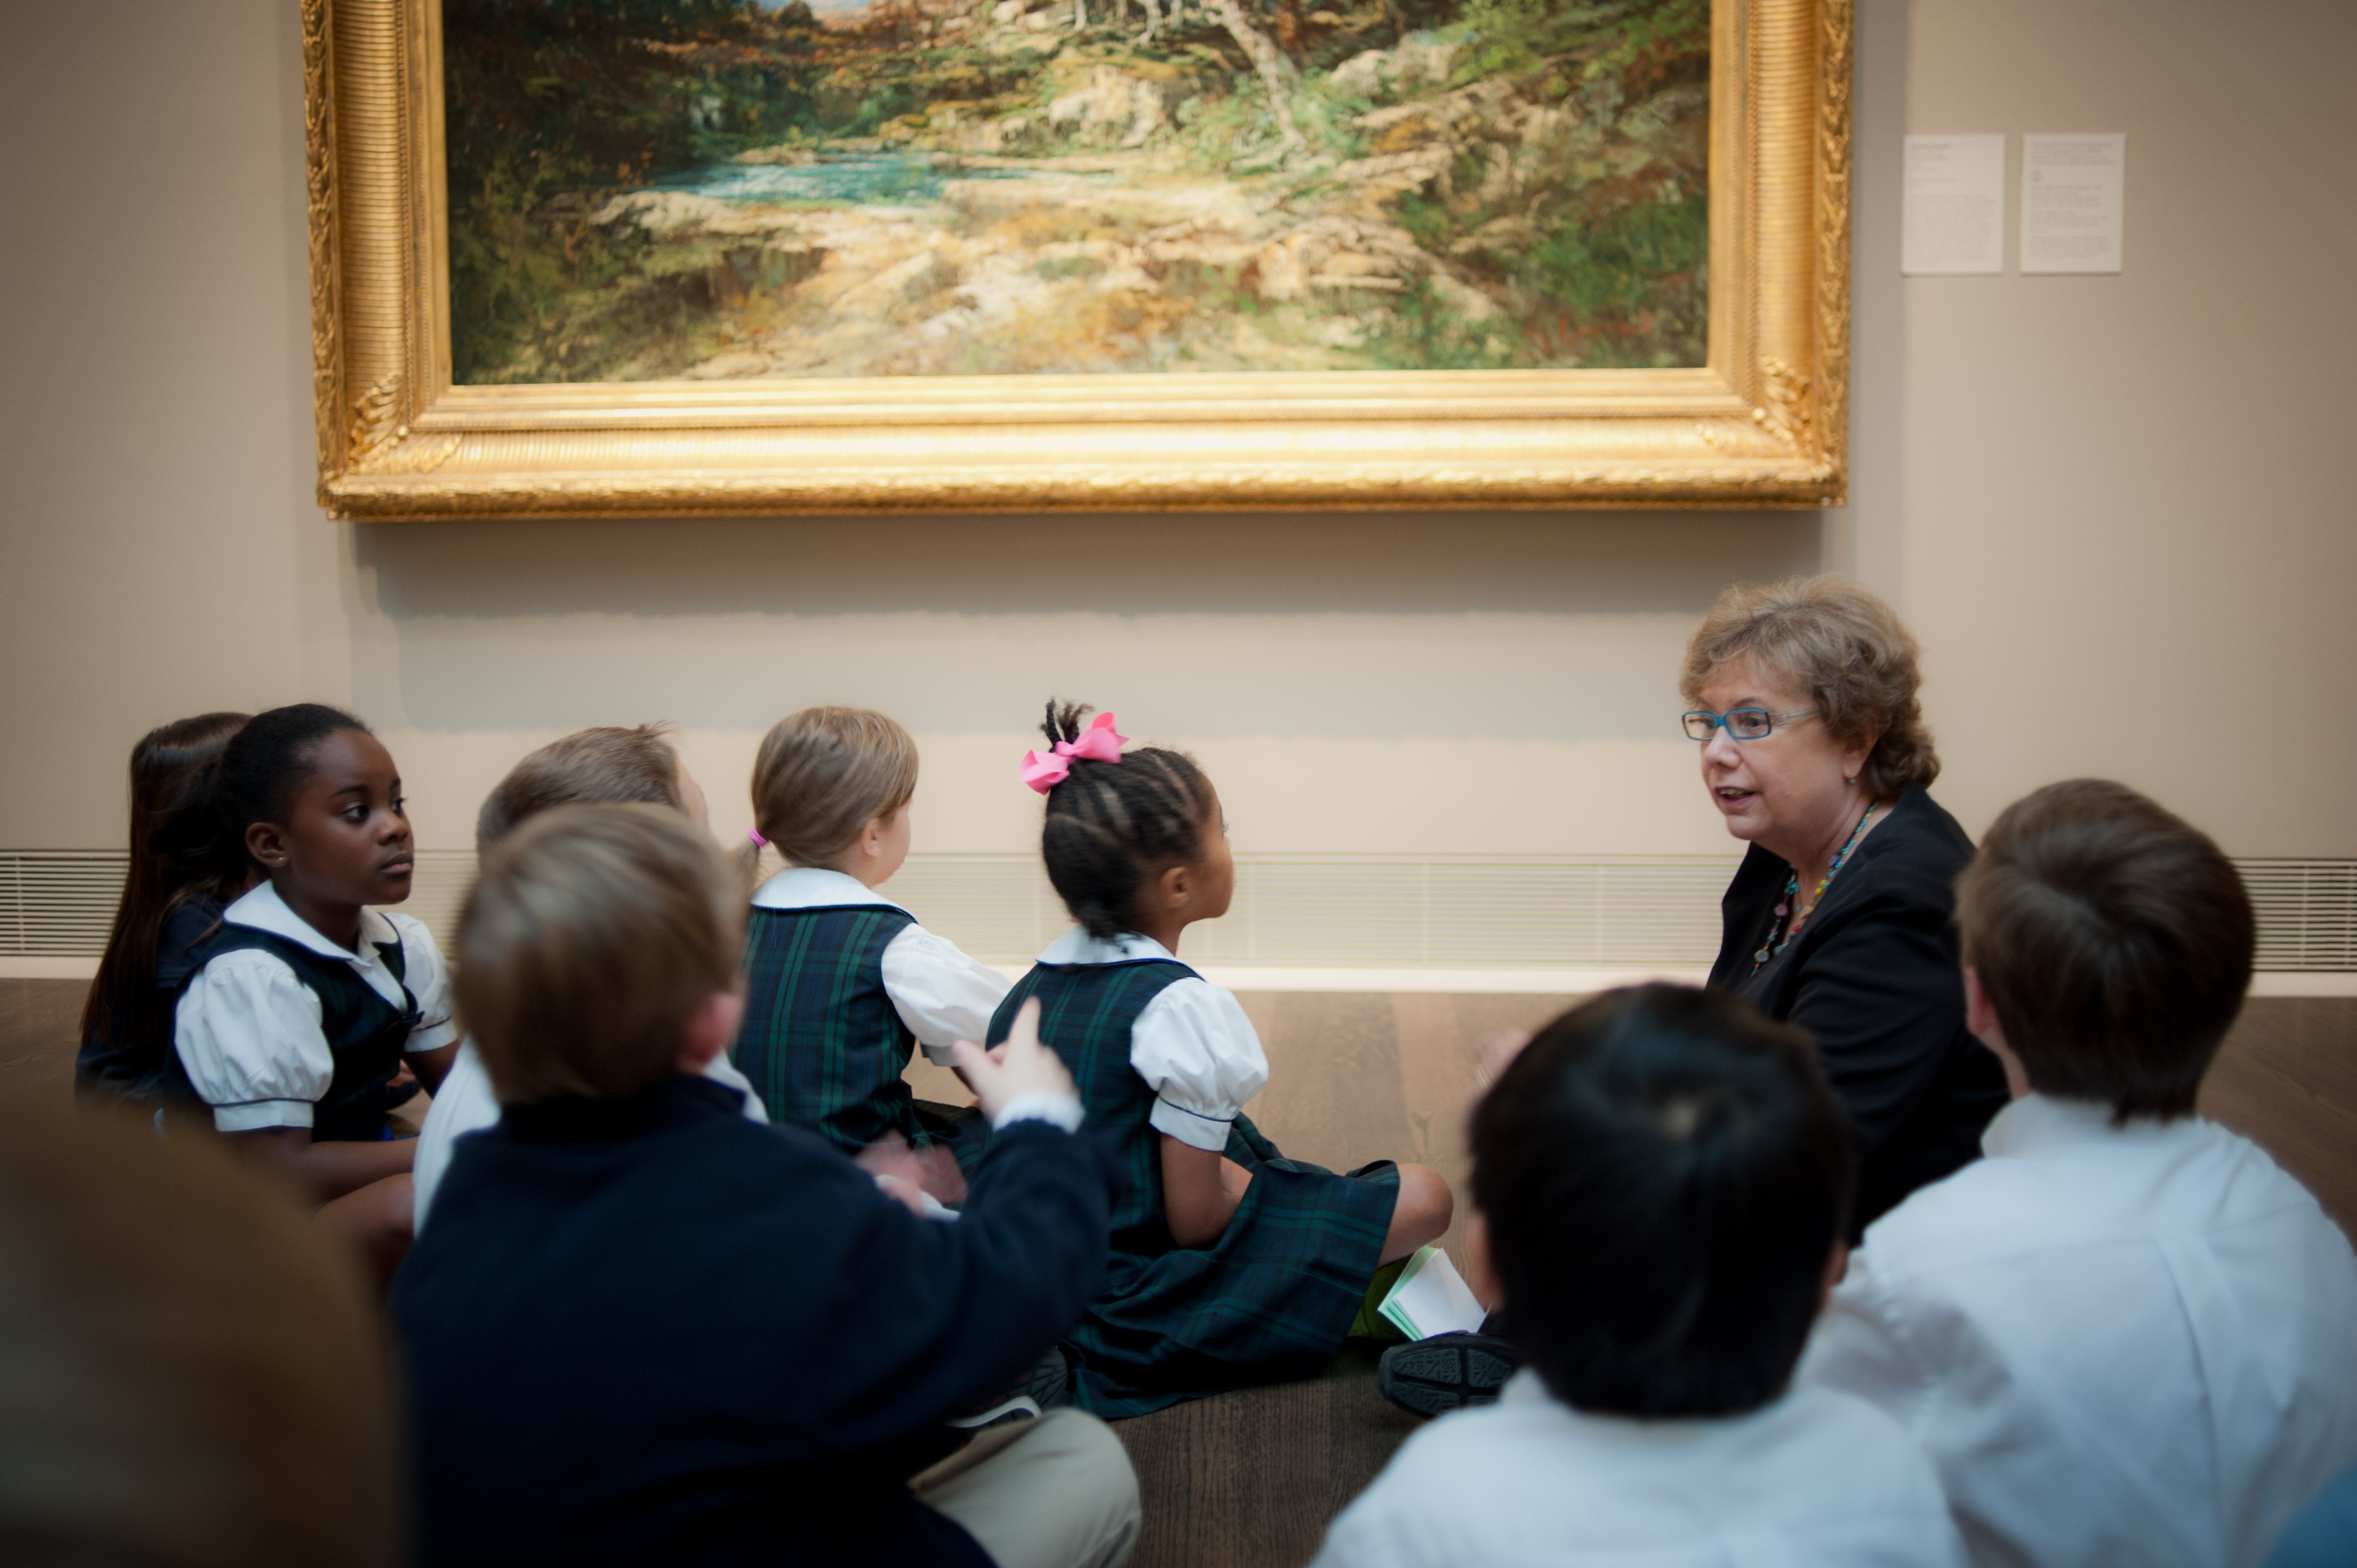 MFAH Docent with kids